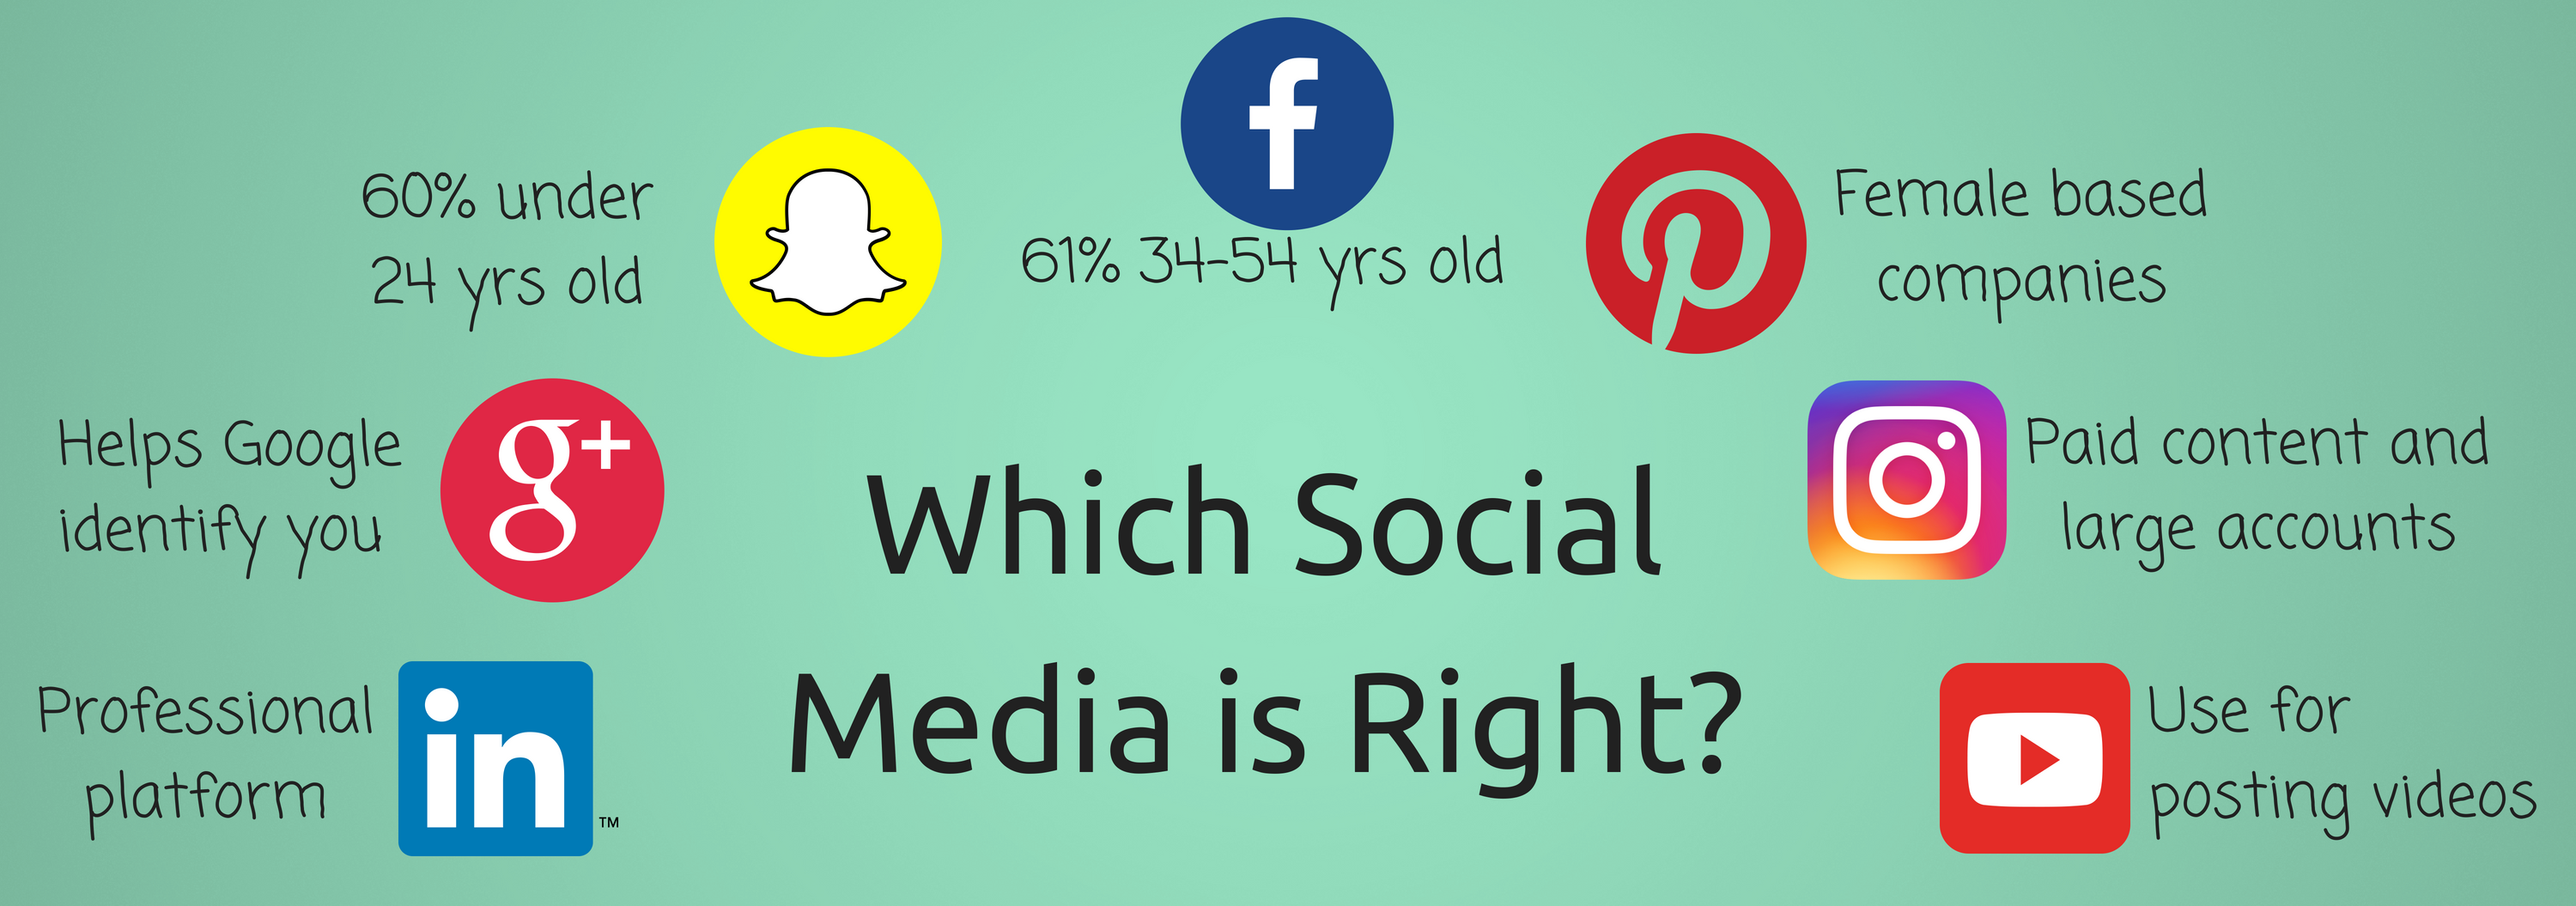 Which Social Media is Right Infographic